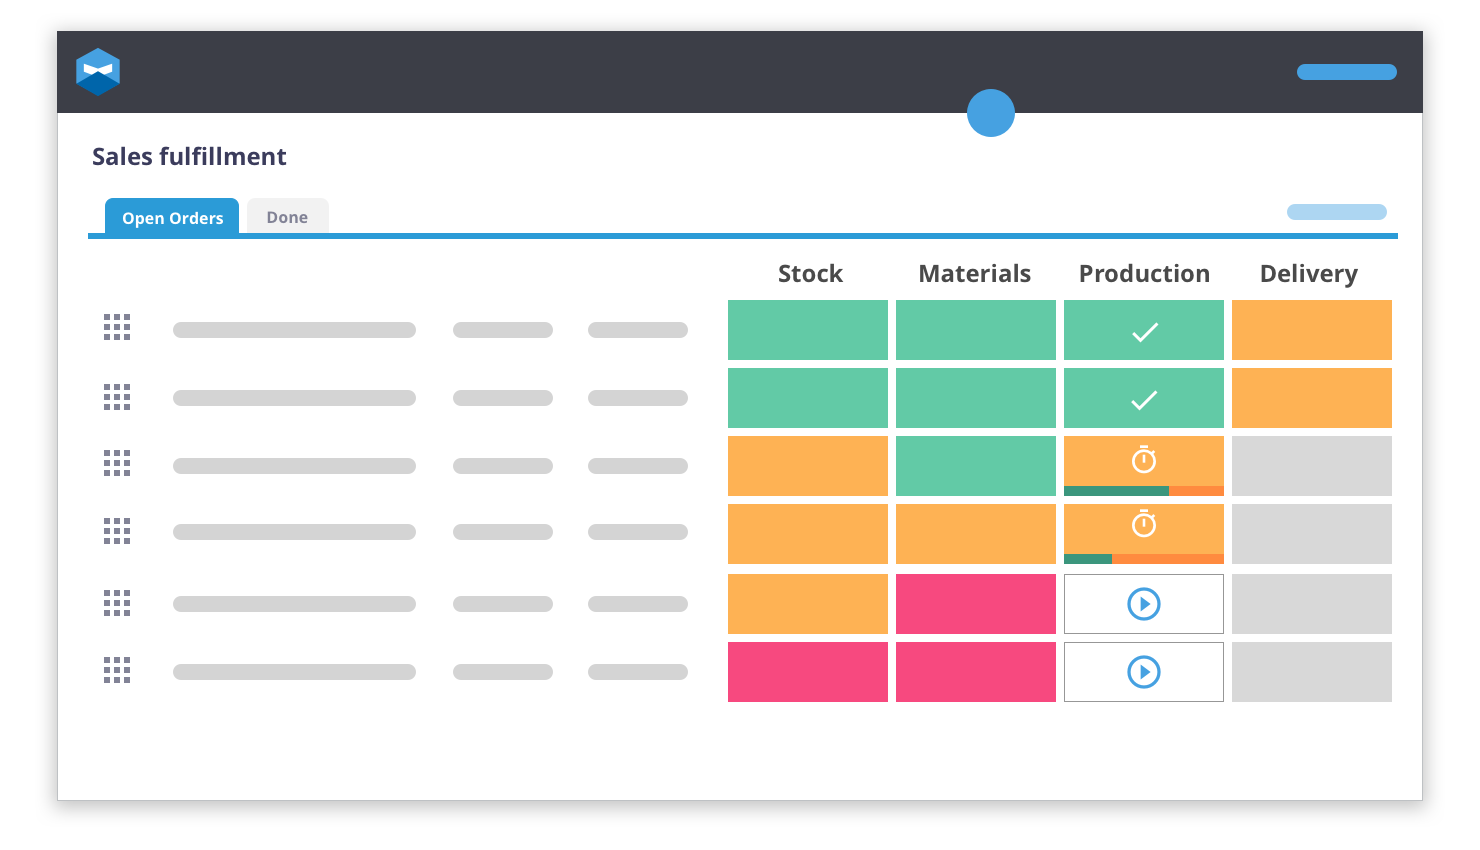 Katana allows you to view your product bundle creating process from start to finish. Set up the recipe and then once the orders are rolling in you will immediately know how production is coming along with a color-coded chart.